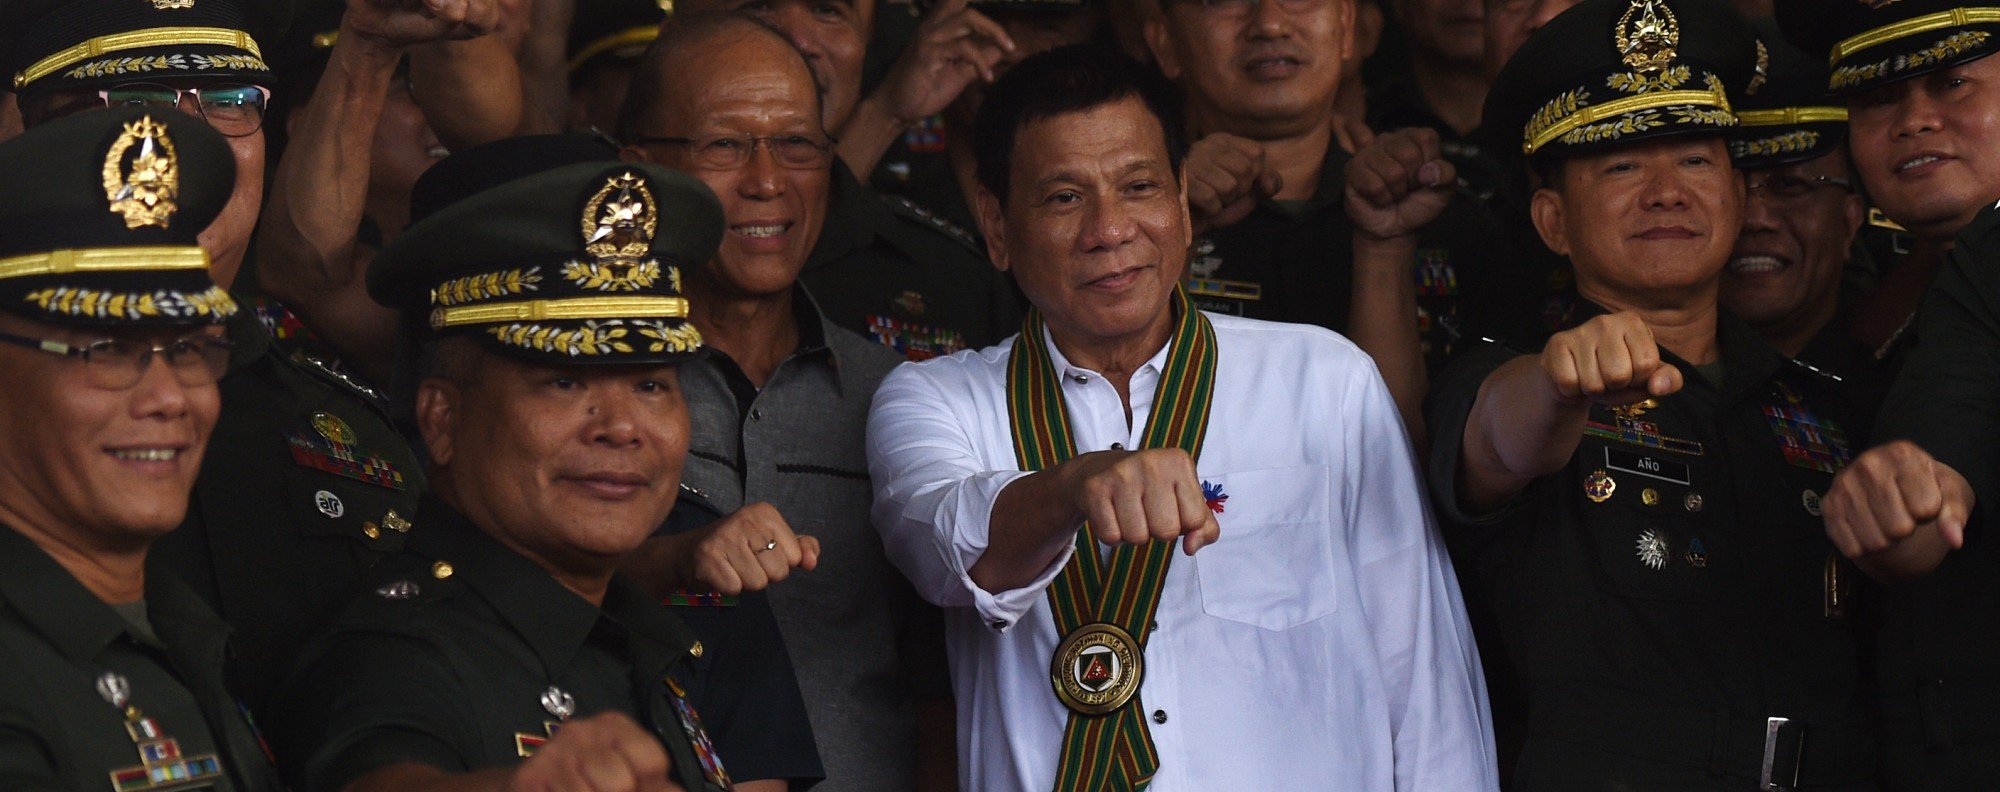 "Philippine President Rodrigo Duterte with military officers during a ""talk to the troops"" visit in Manila 2016."